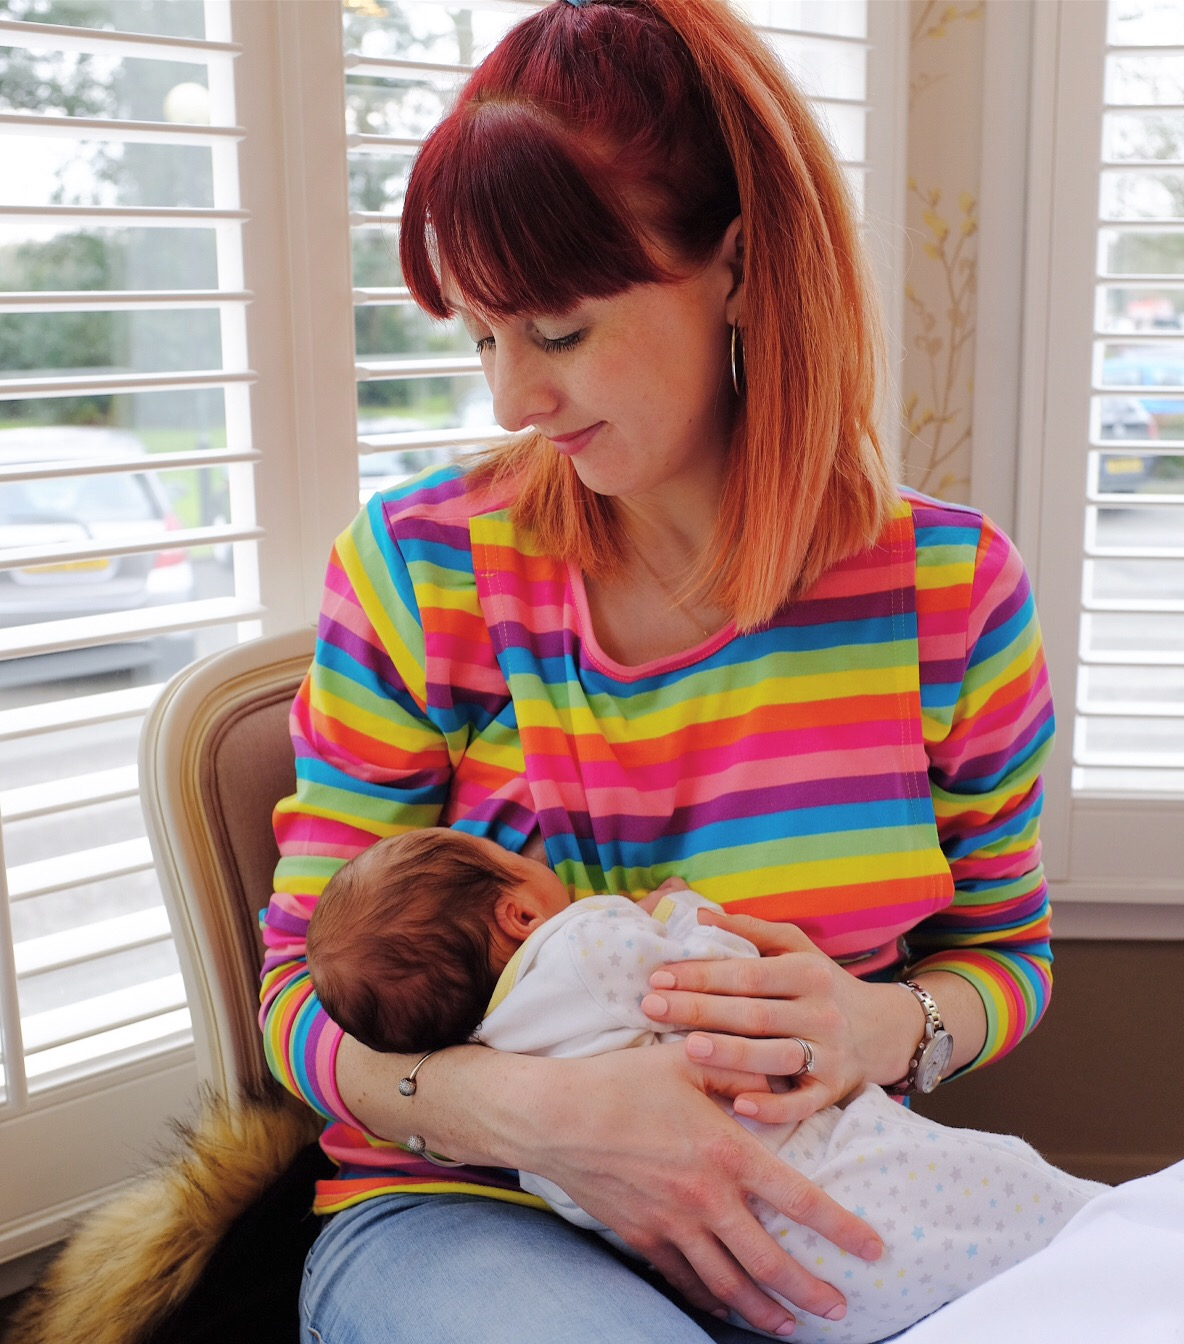 10 Things I'd Forgotten About Breastfeeding a Newborn